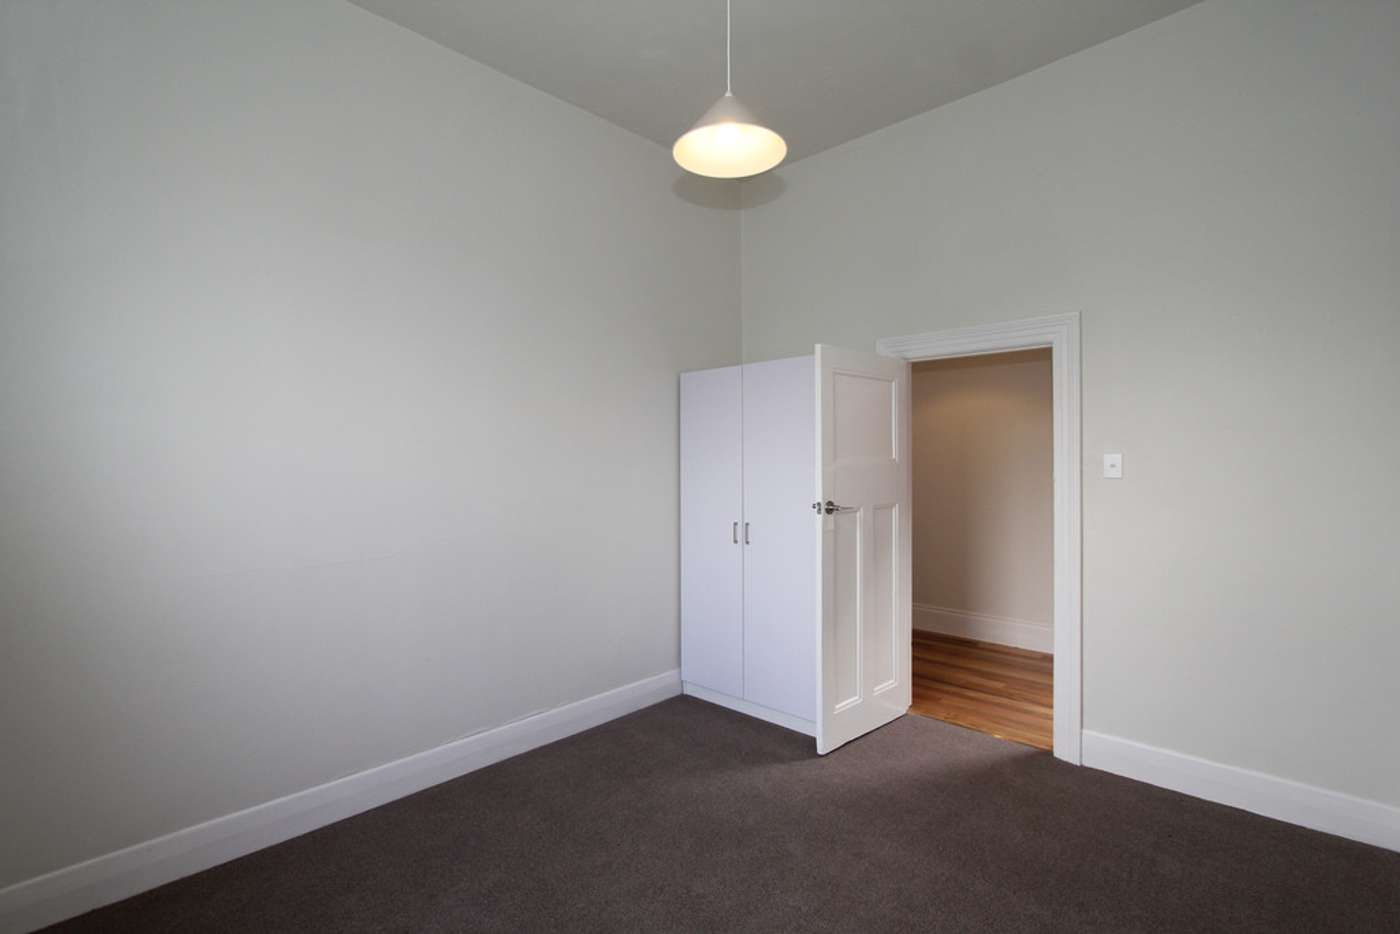 Sixth view of Homely house listing, 8 Claxton Street, Ballarat Central VIC 3350